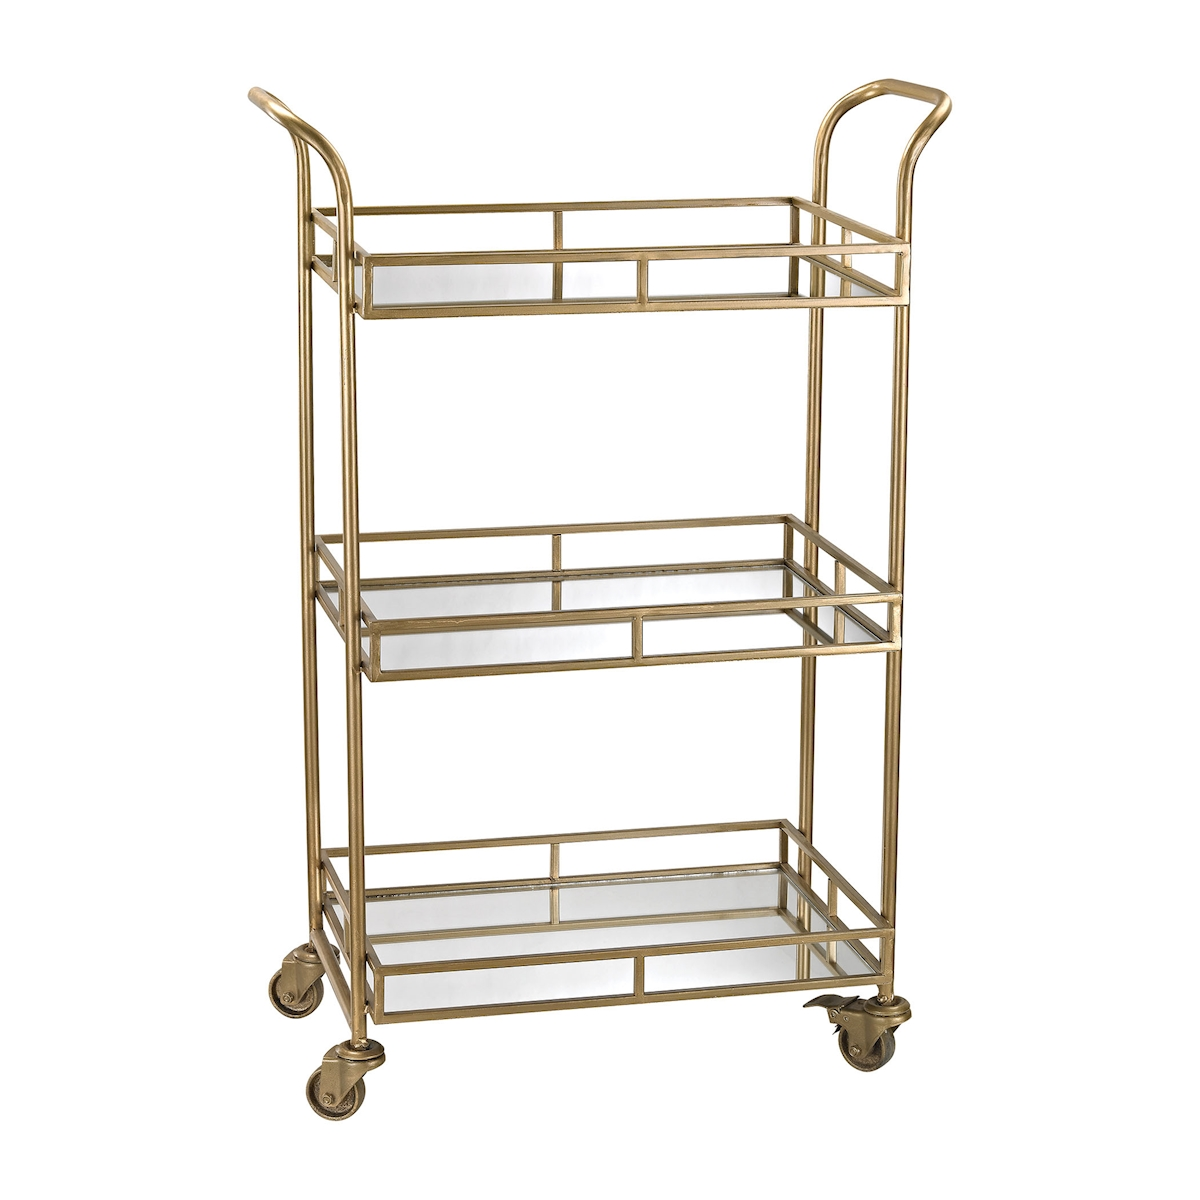 Julep Bar Cart in Gold with Mirrored Shelves | Elk Home